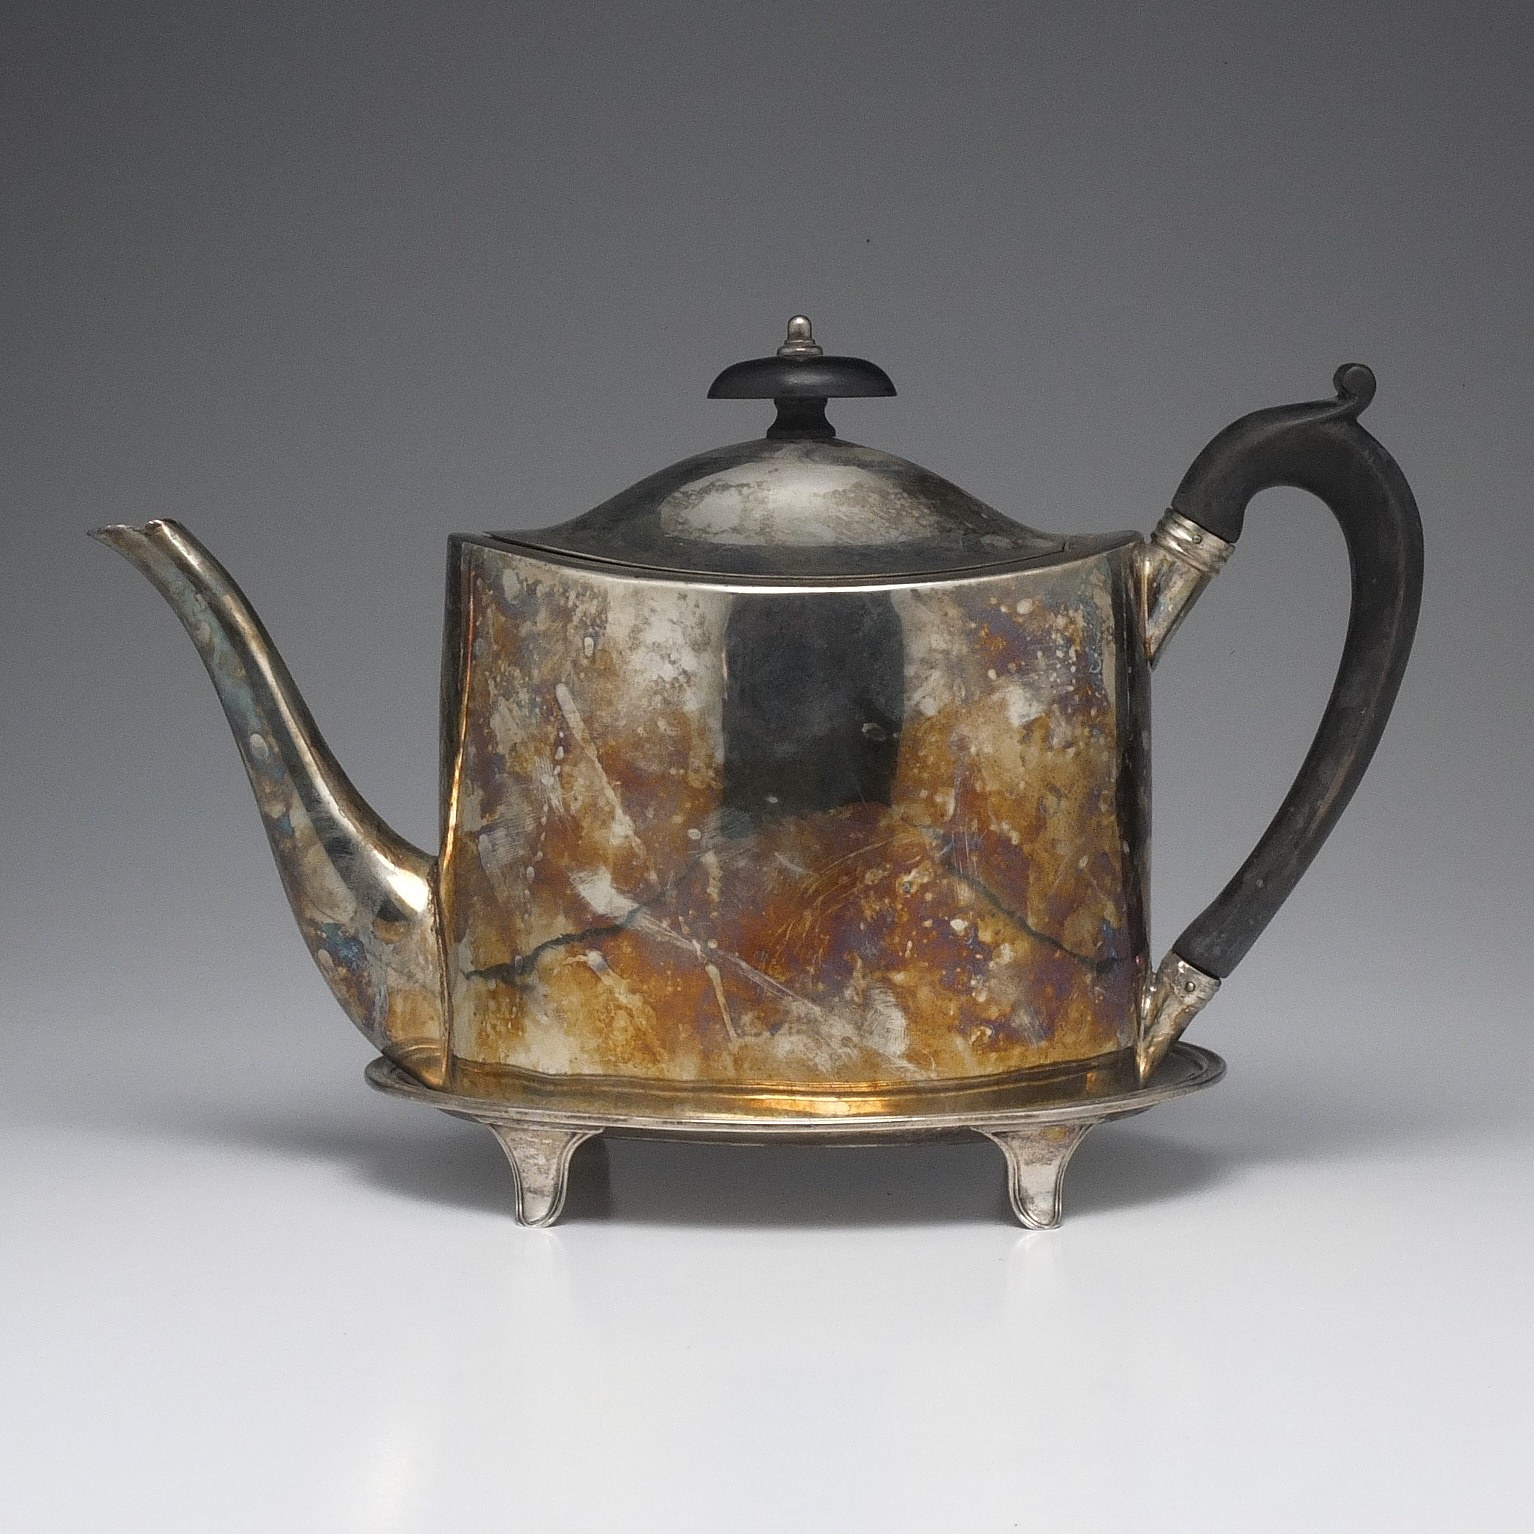 'George III Sterling Silver Teapot and Trivet John Emes London 1801'